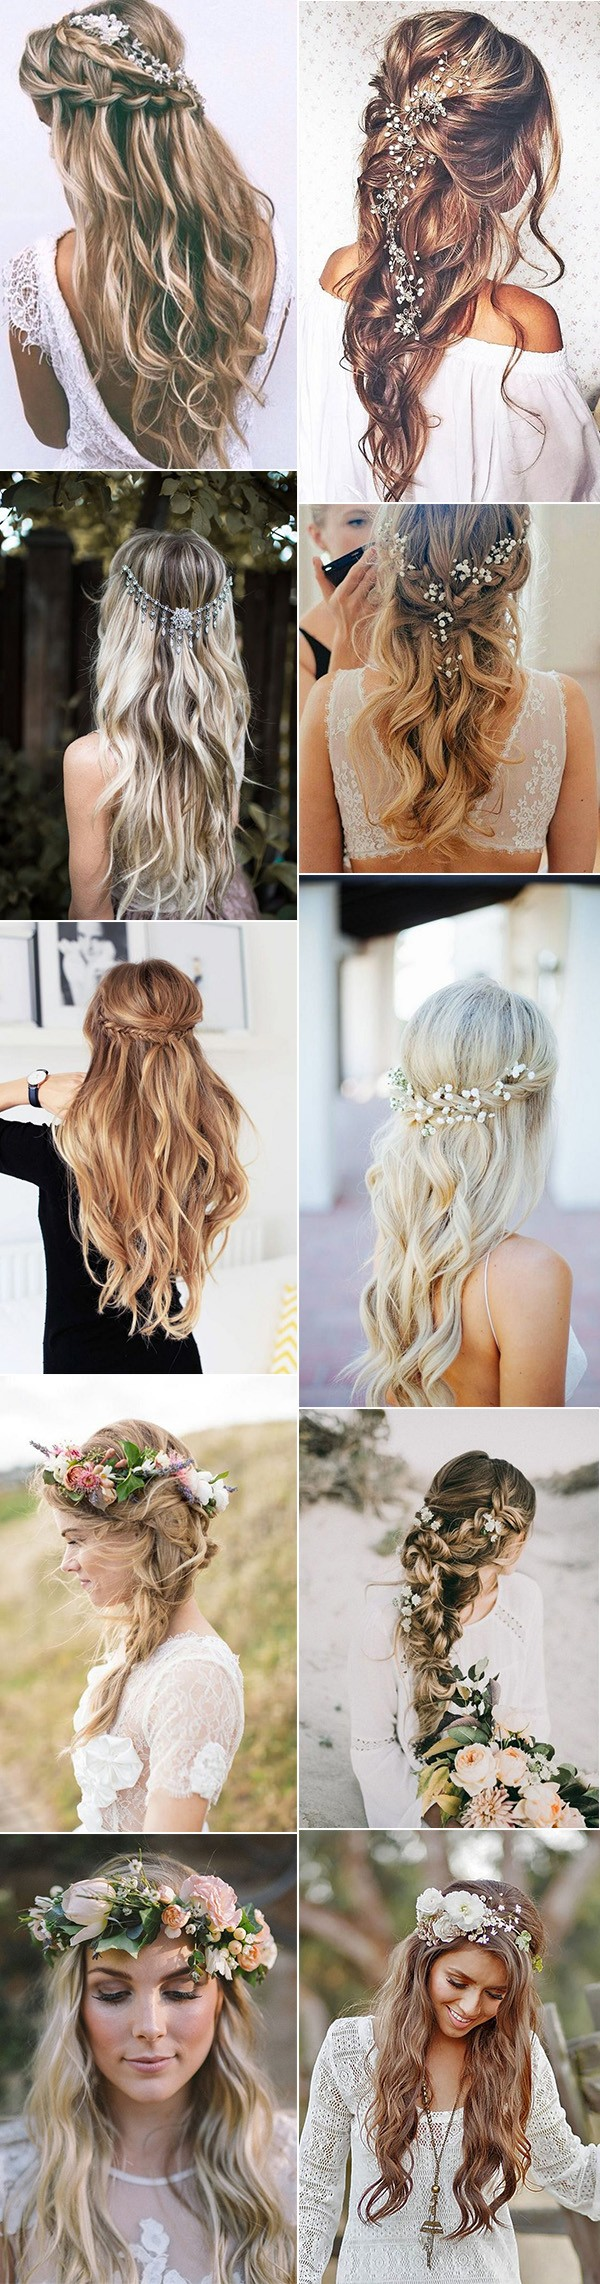 boho chic half up half down wedding hairstyles